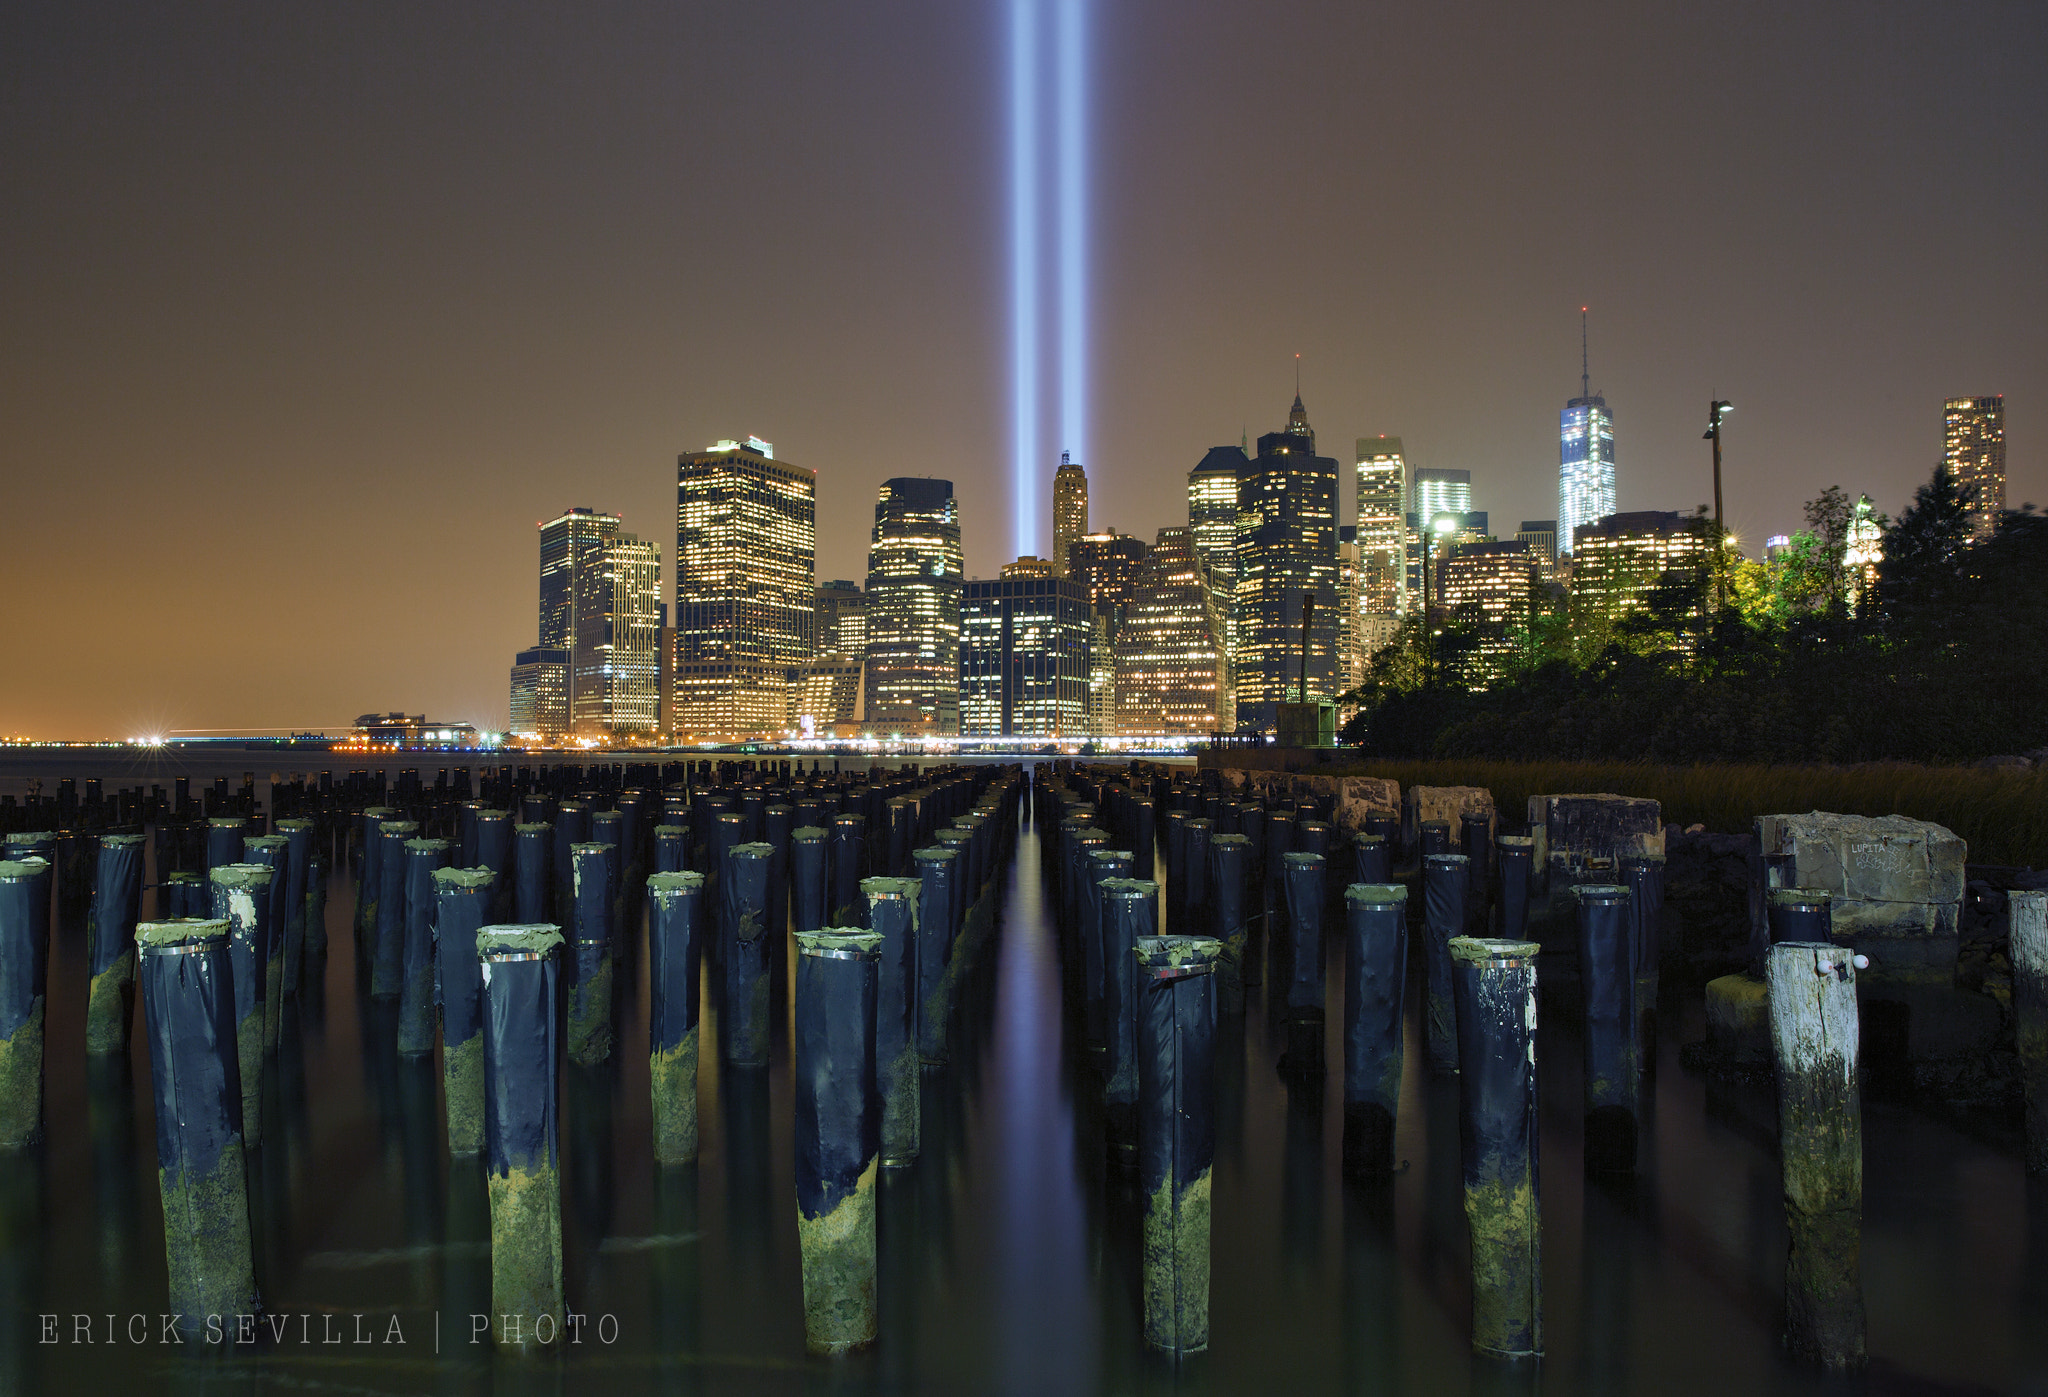 Photograph Viewed from Brooklyn by Erick Sevilla on 500px